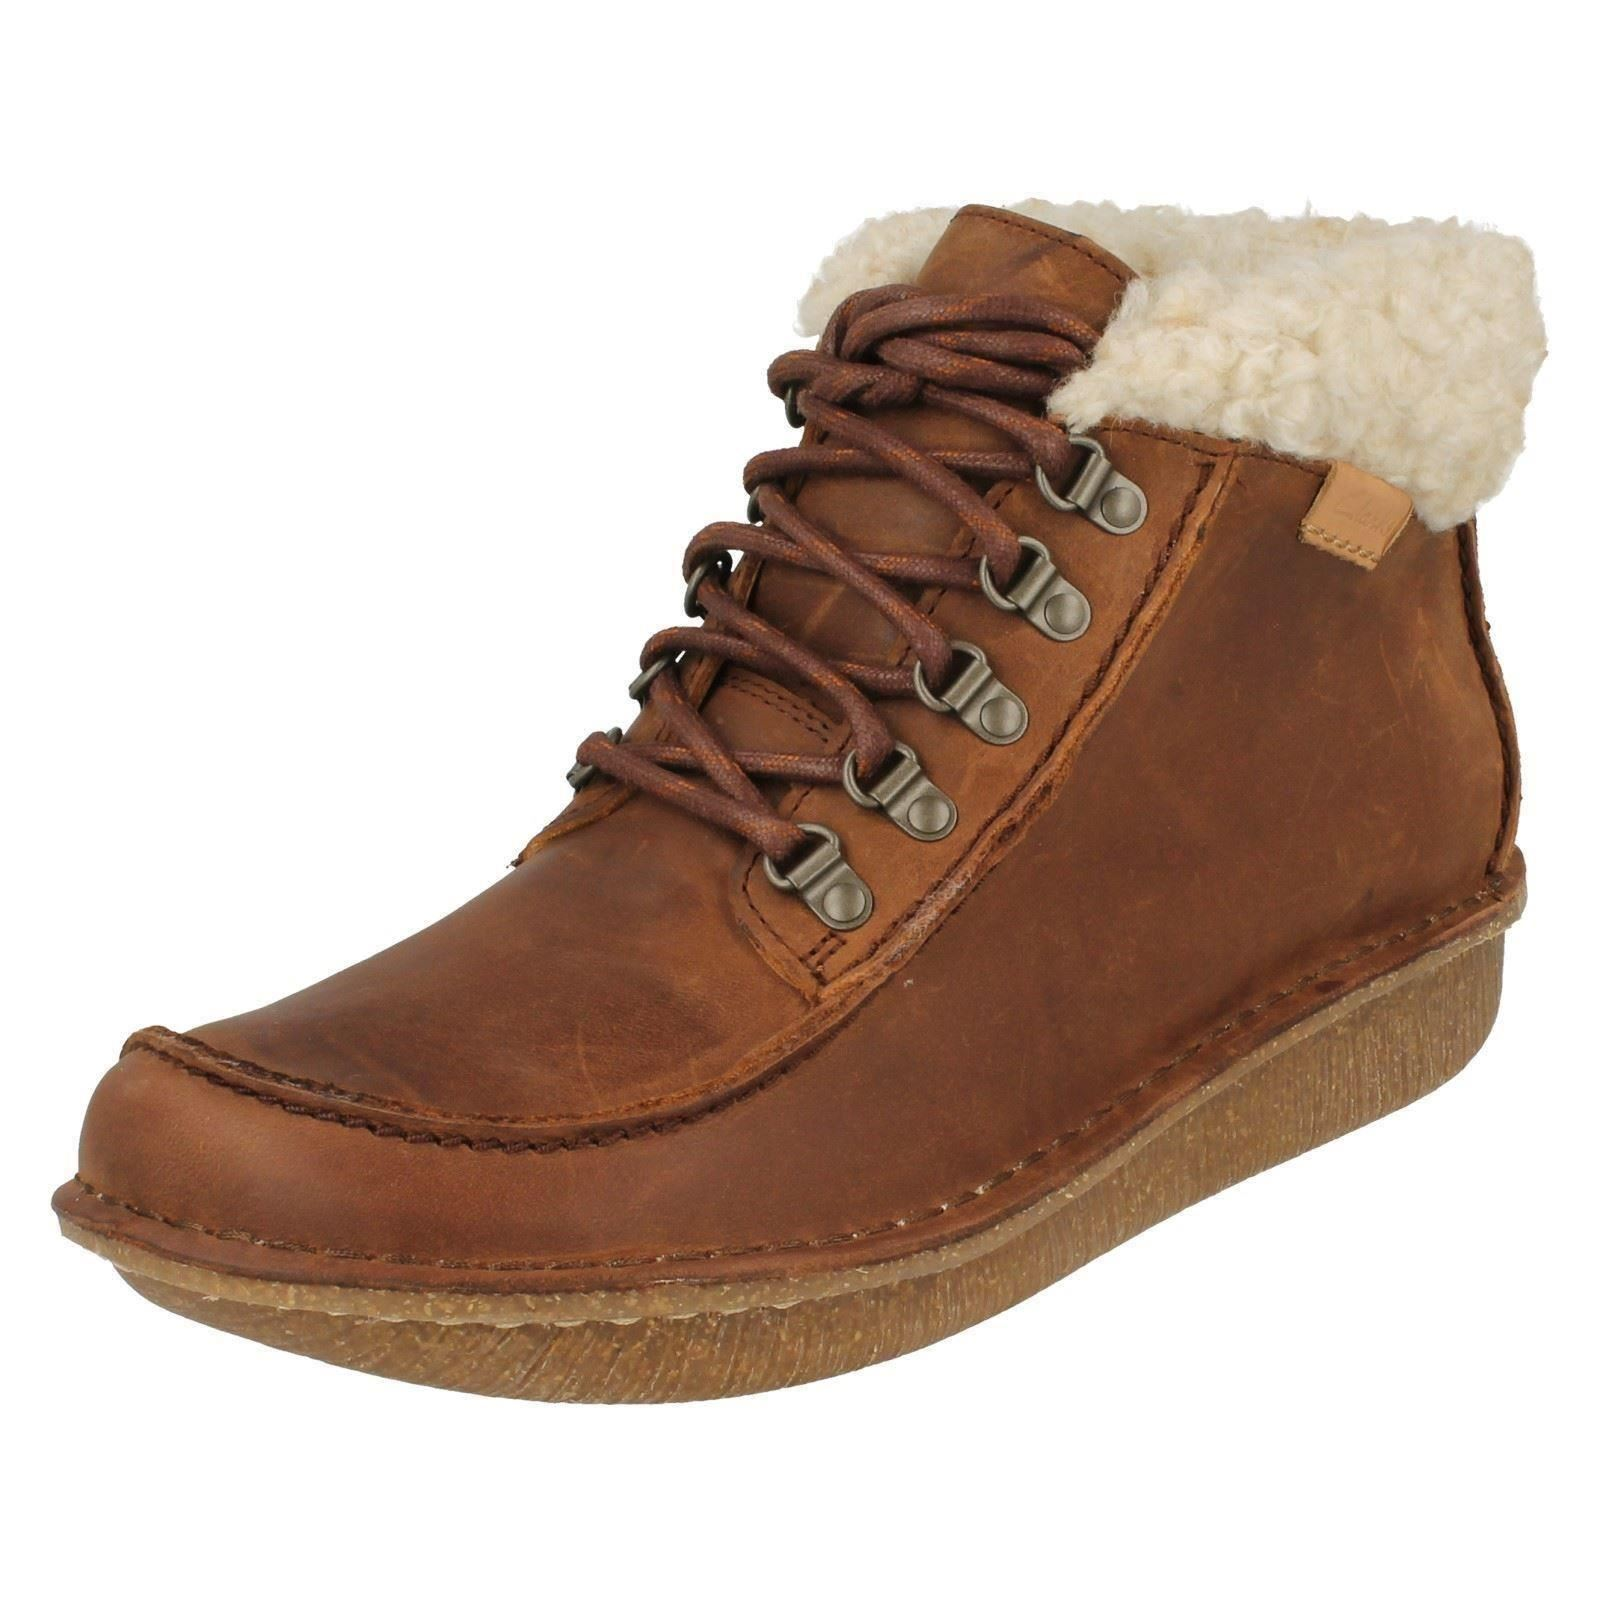 Details about Clarks Ladies Fur Top Ankle Boots Funny Girl